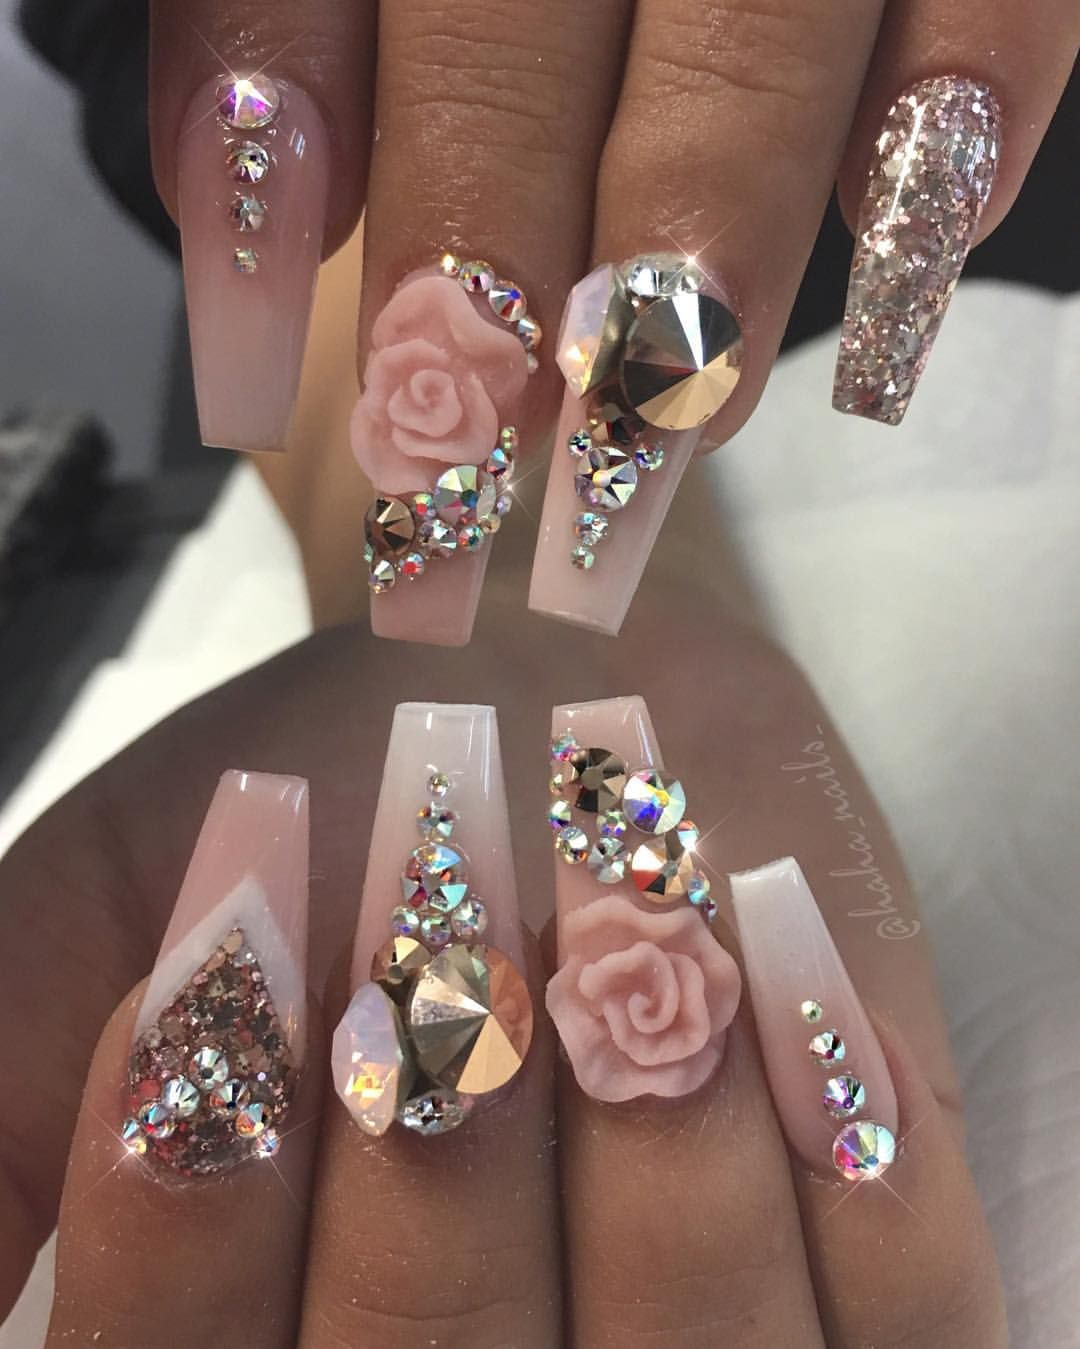 Yesurprise Colorful Crystal Rhinestone Decoration Nails